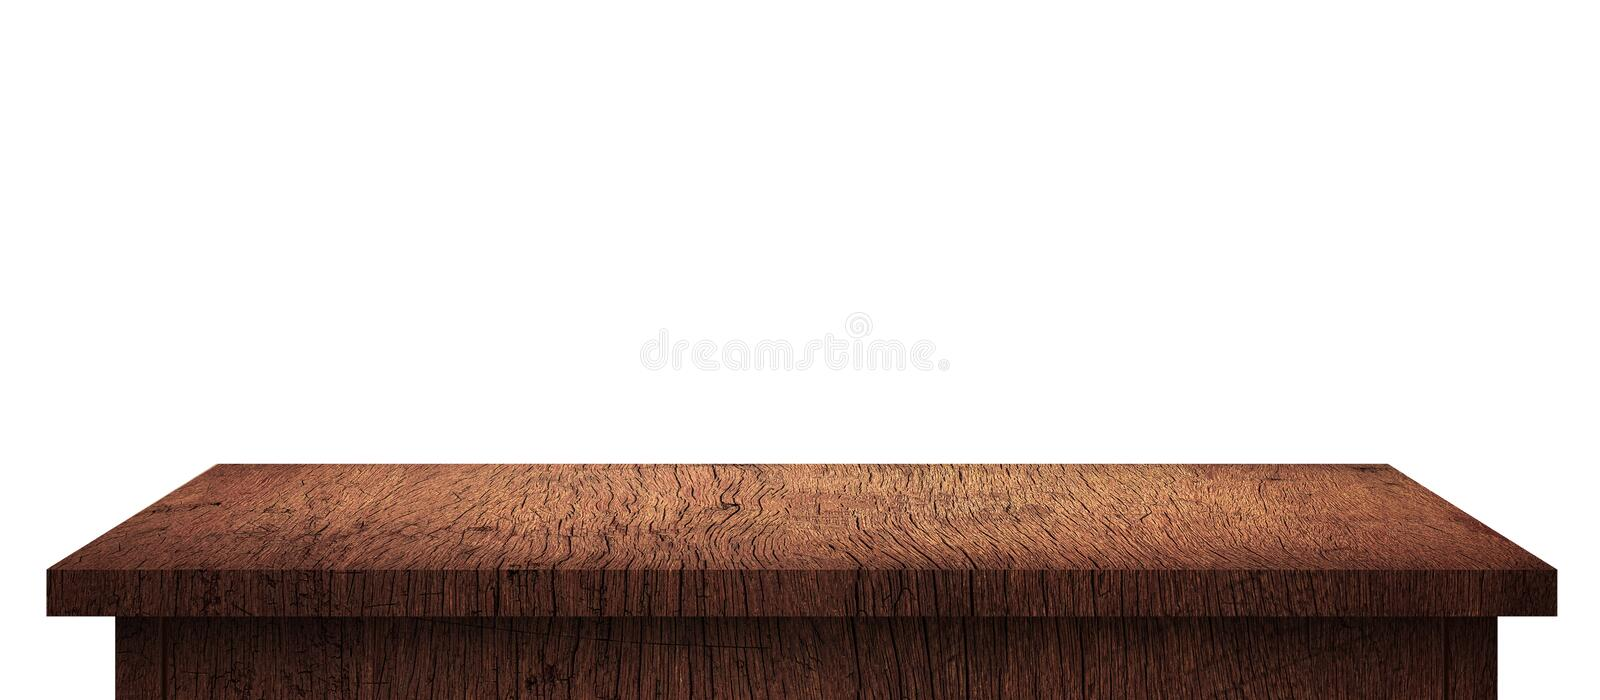 Empty Wood table with brown pattern isolated on pure white background. Wooden desk and shelf display board with perspective floor royalty free stock photo